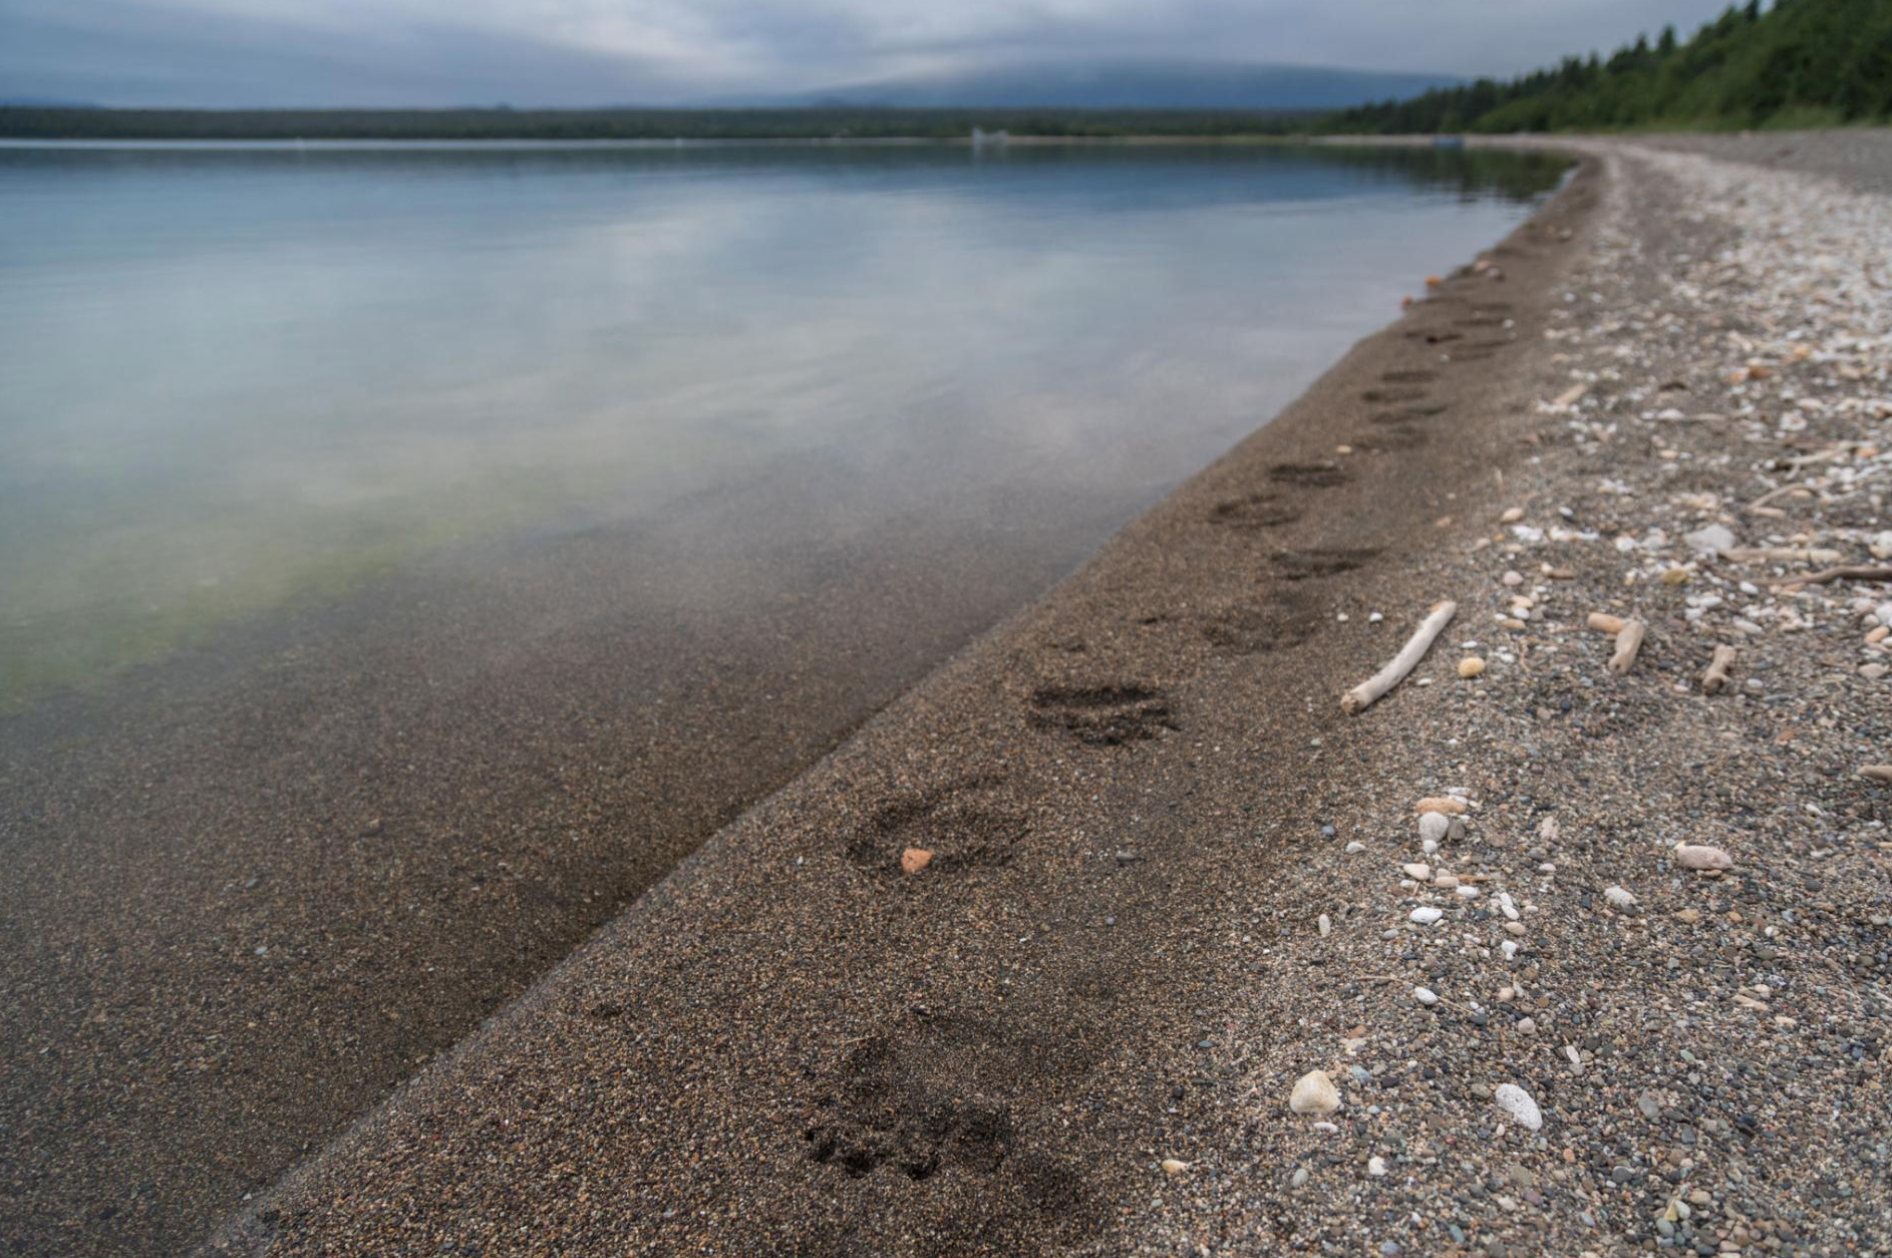 Brown bear tracks dot the beach of Naknek Lake, at Brooks Camp. The spot has become increasingly popular thanks to a live webcam on Explore.org, which millions around the world watch every year.